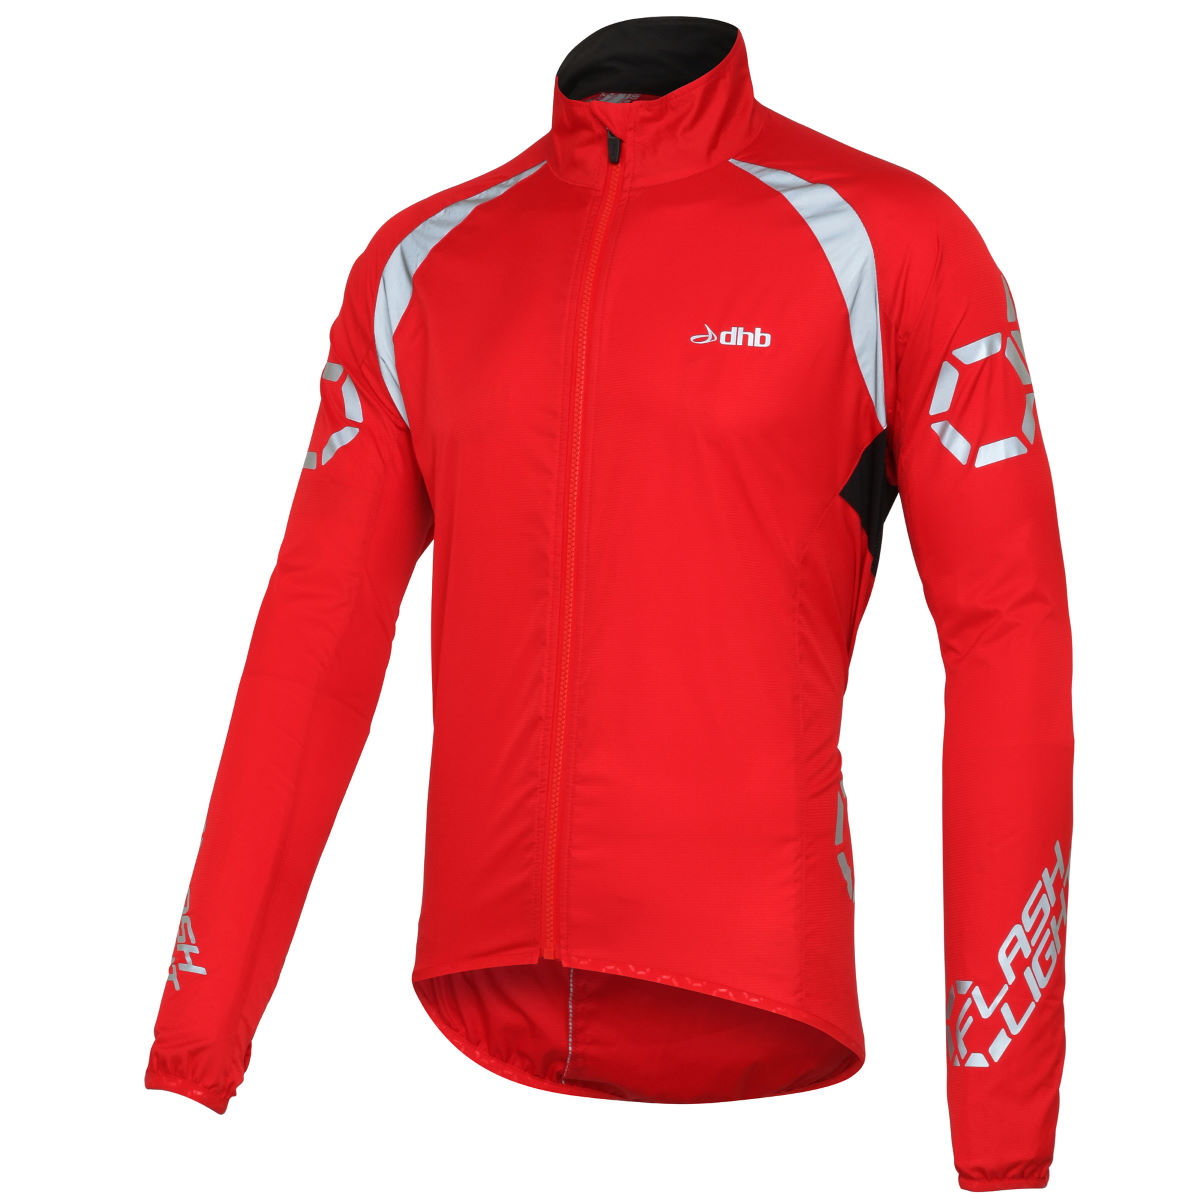 Veste dhb Flashlight (coupe-vent) - XXL Rouge Coupe-vents vélo